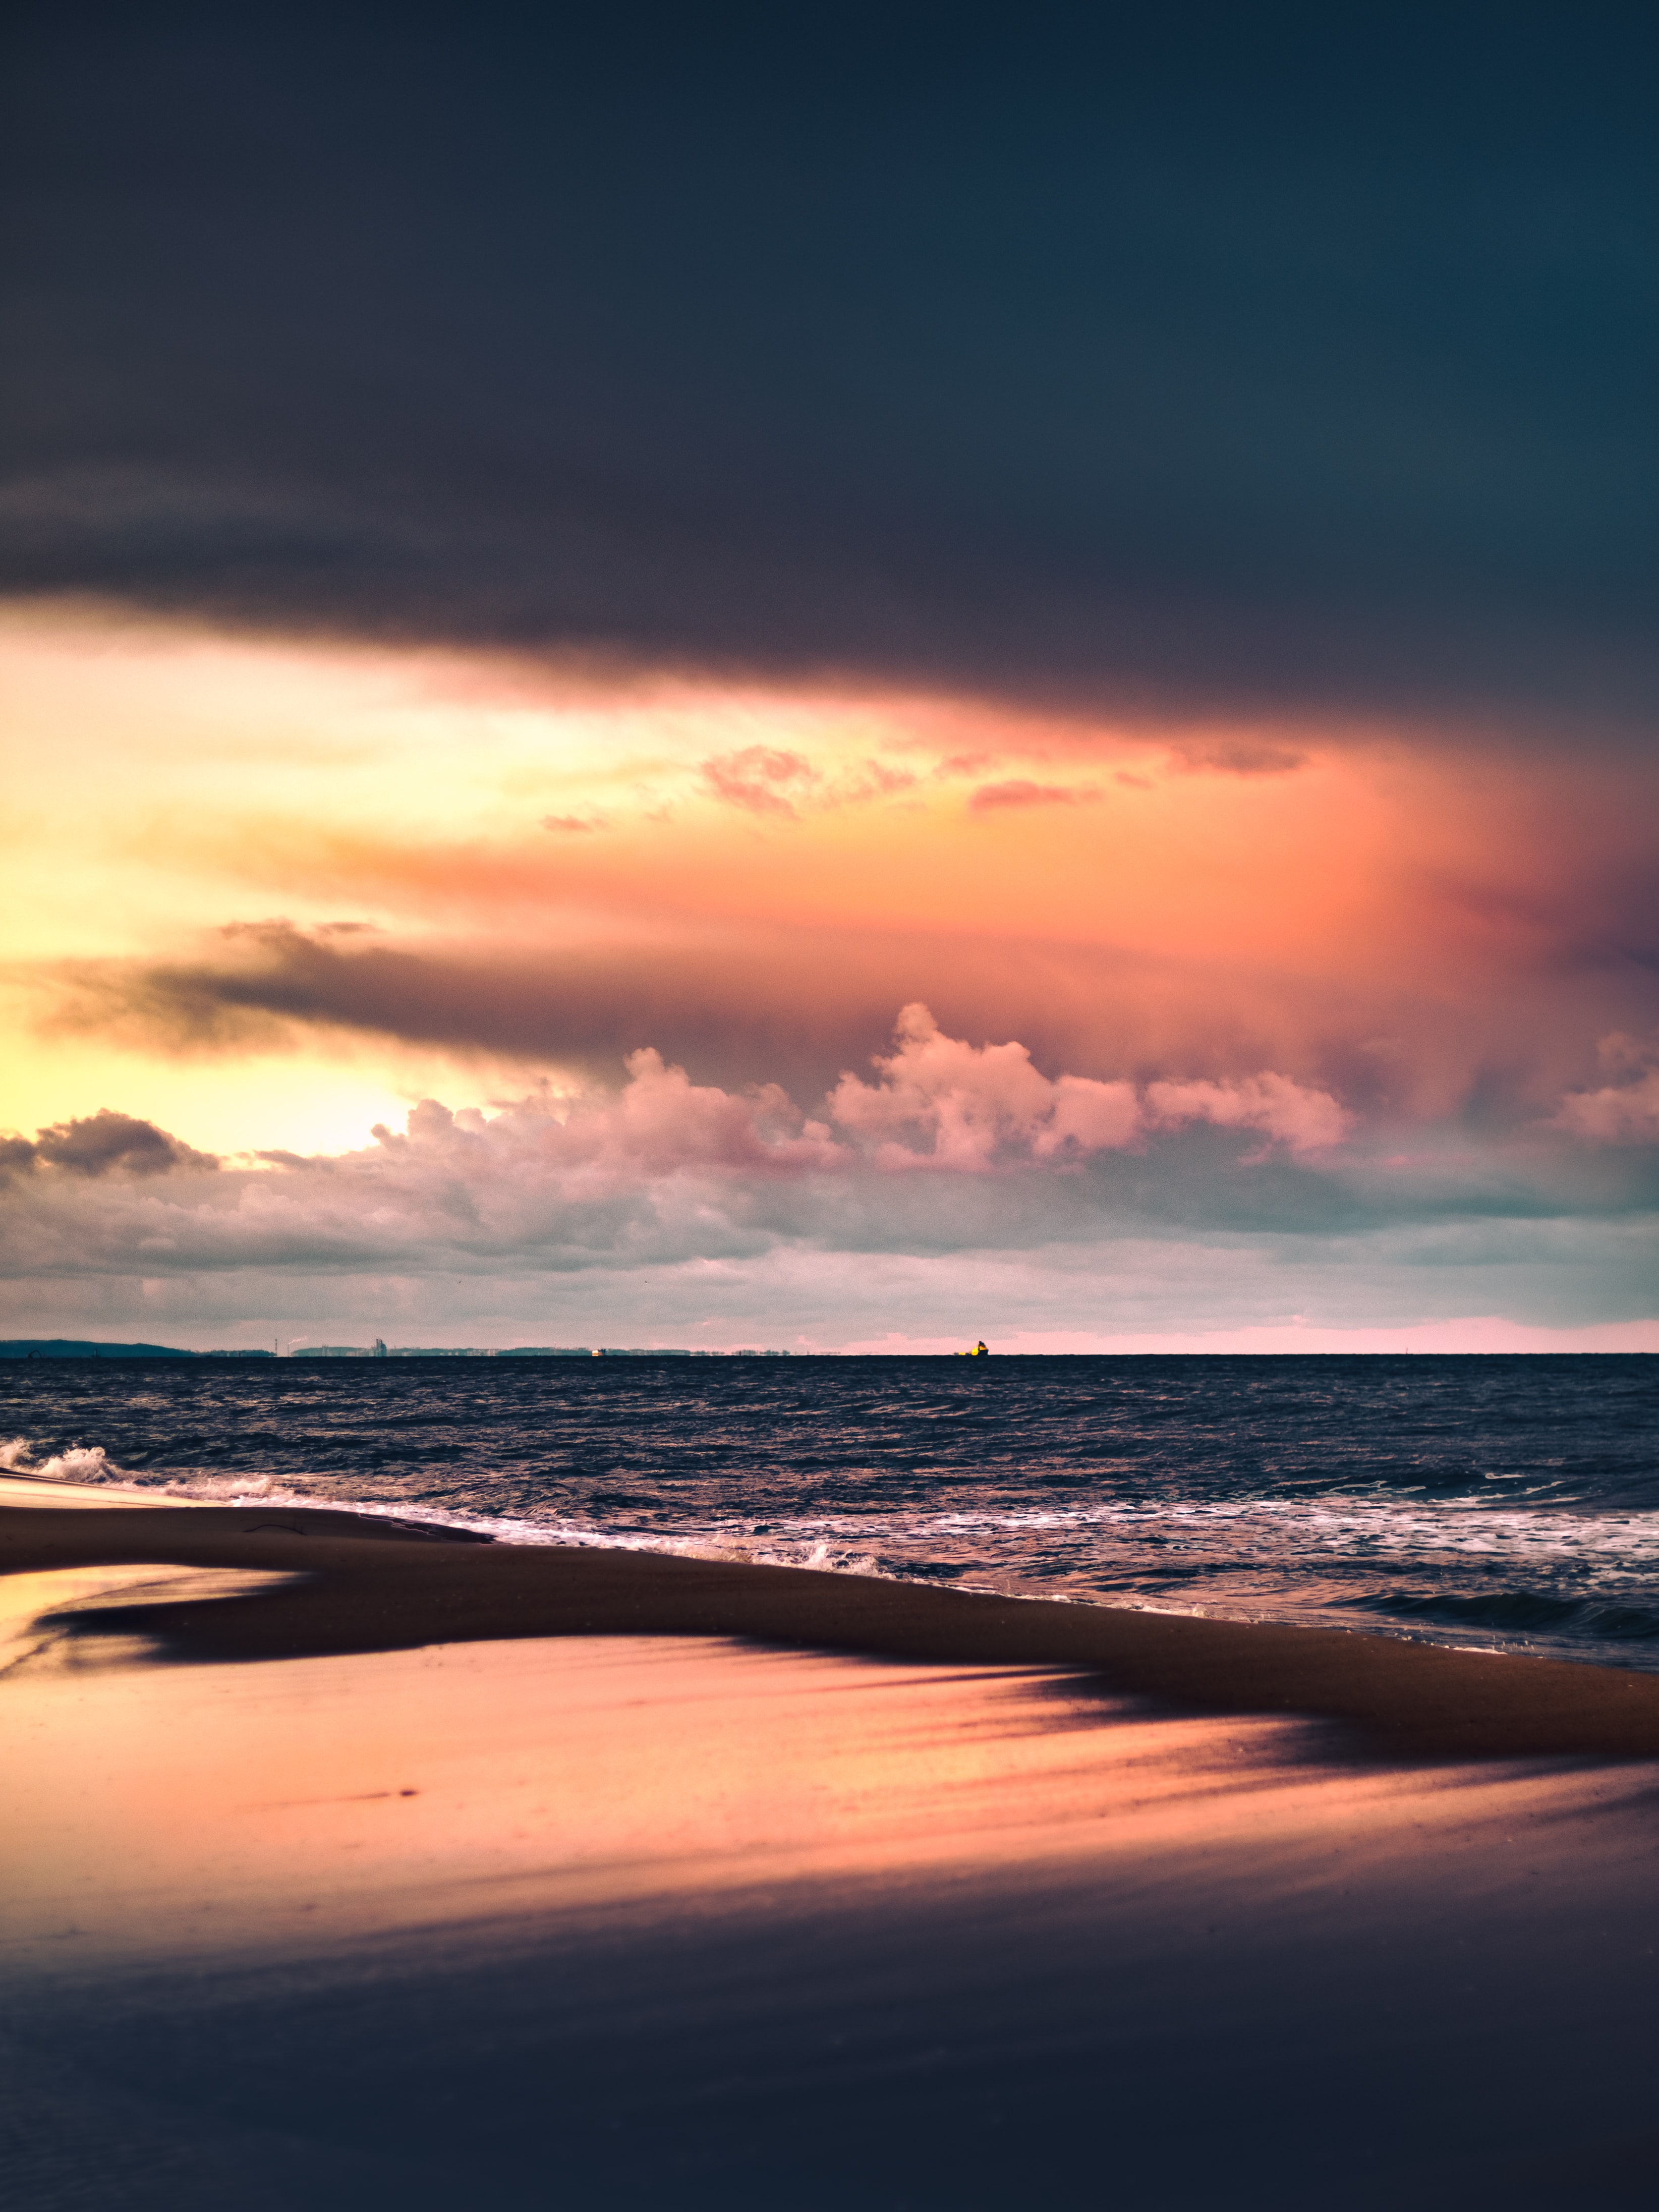 143204 download wallpaper Nature, Sea, Beach, Sunset, Dusk, Twilight screensavers and pictures for free